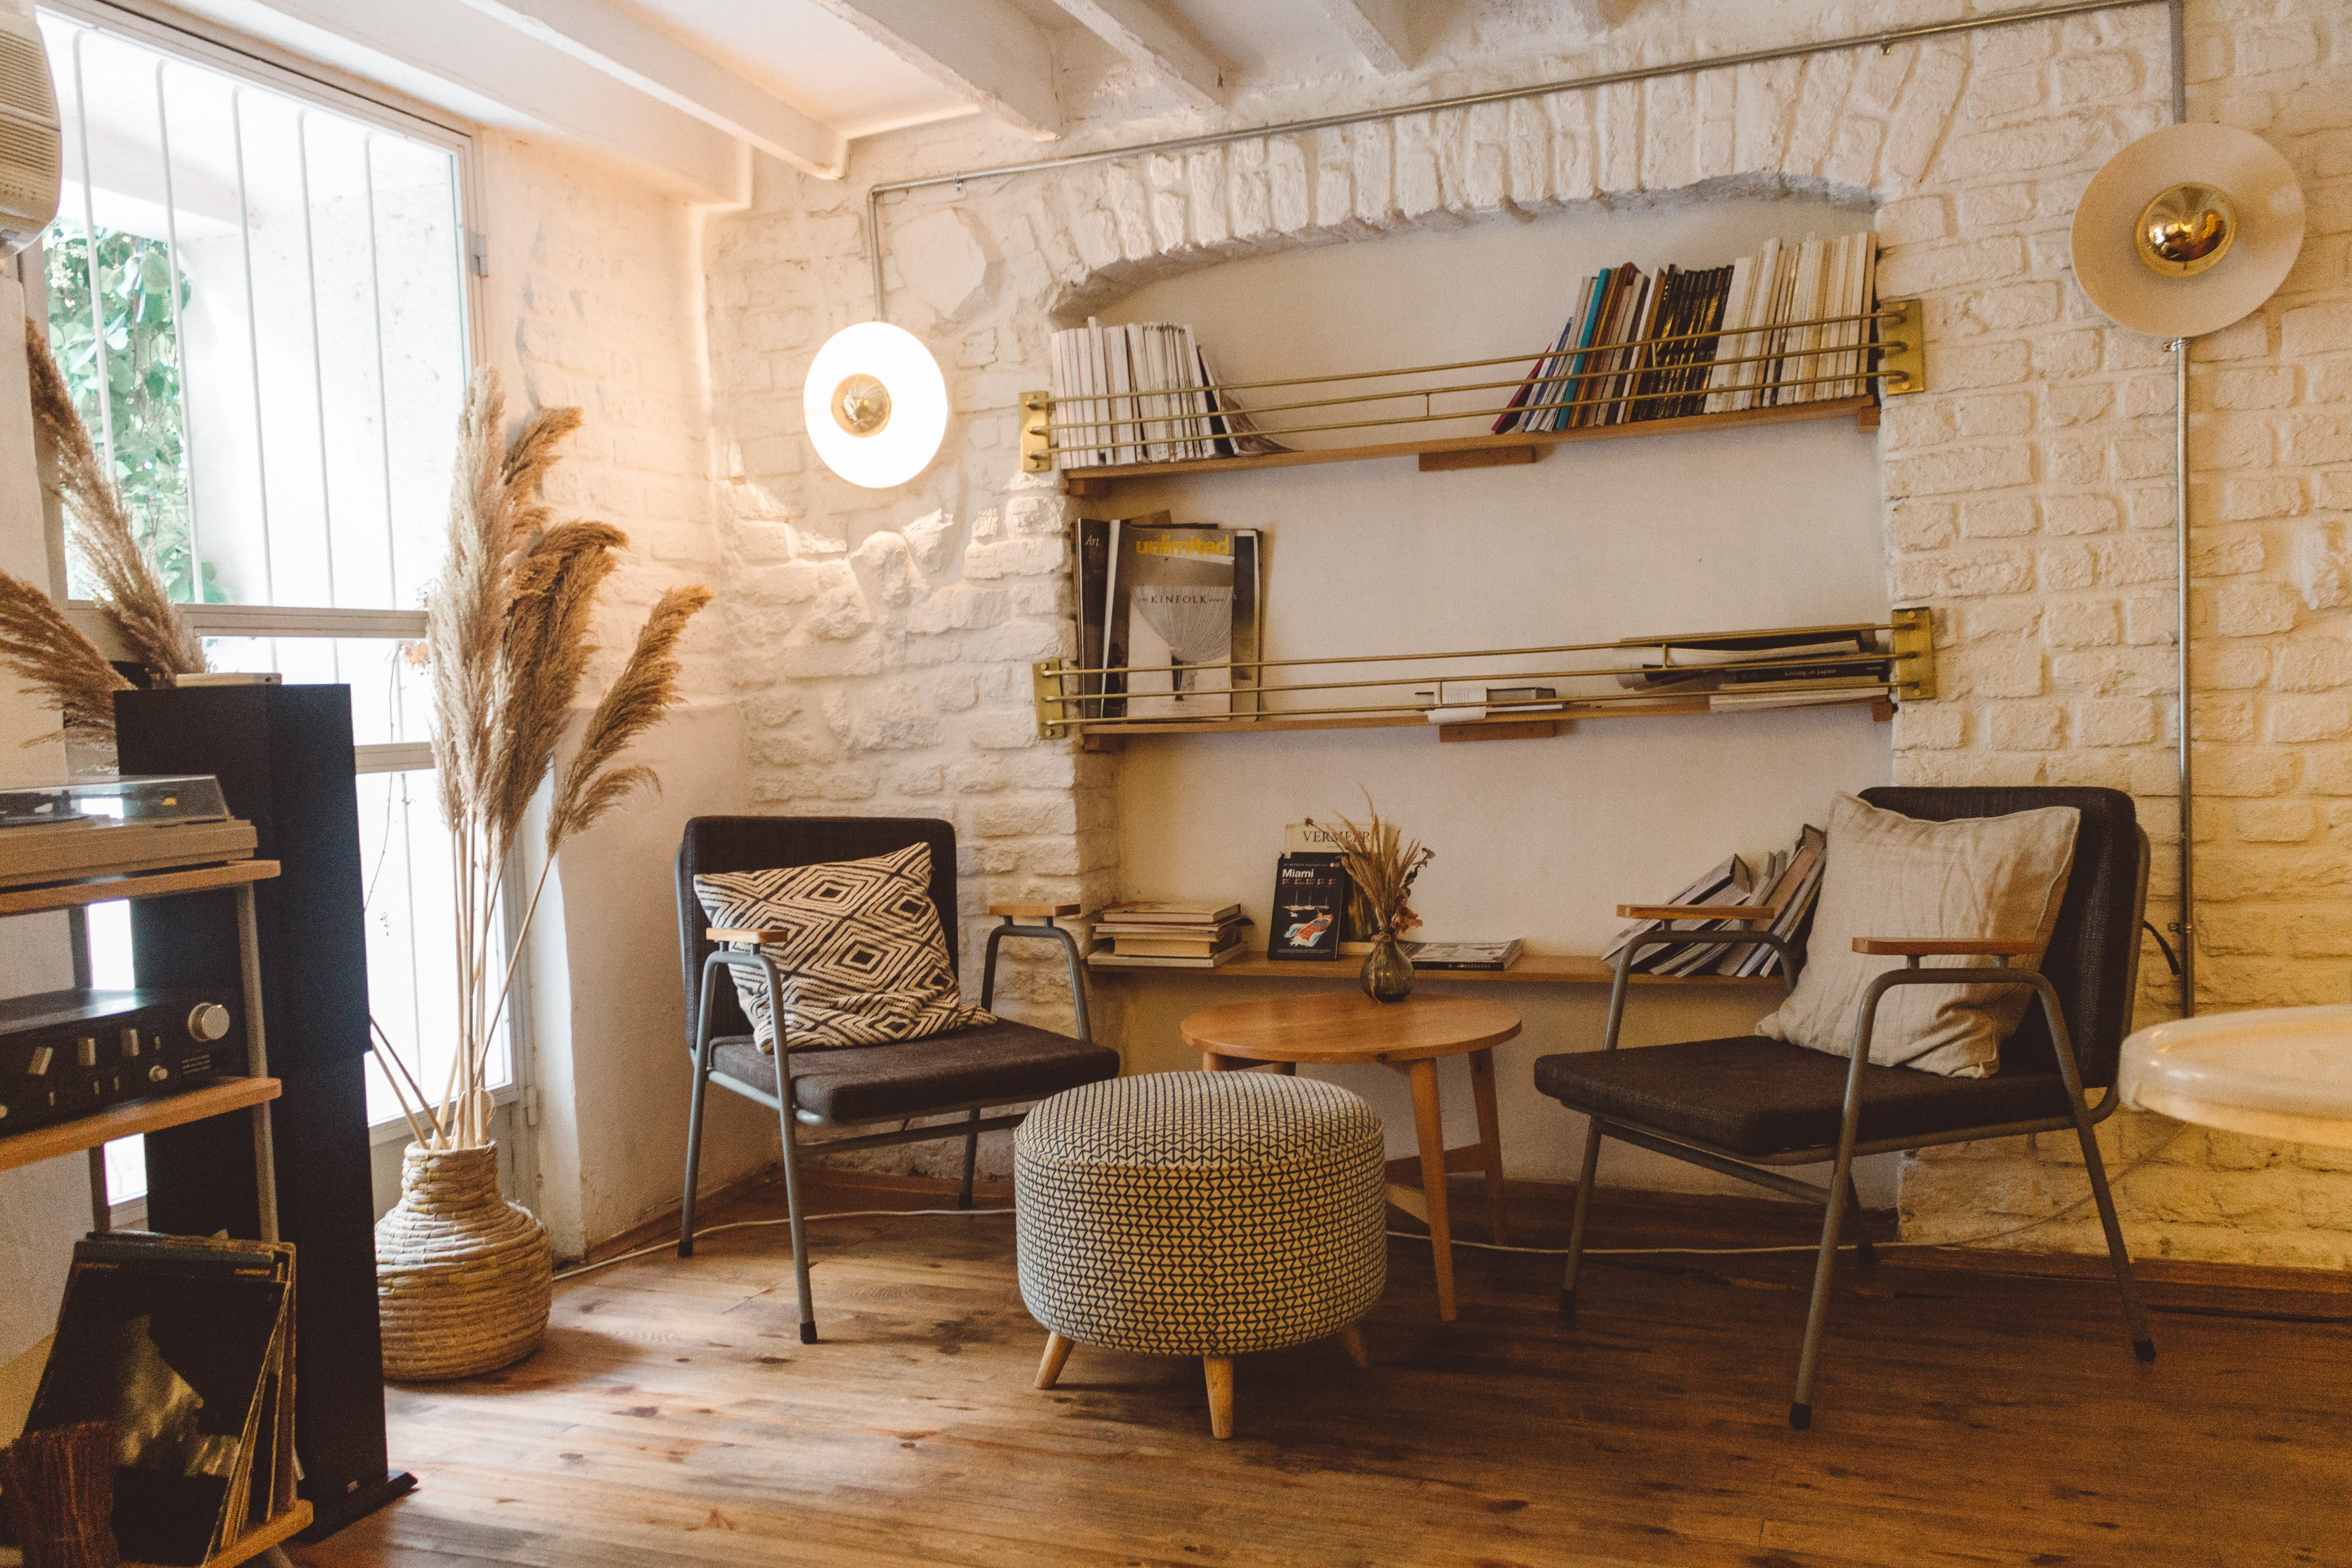 Sitting area in an up-cycled office space.